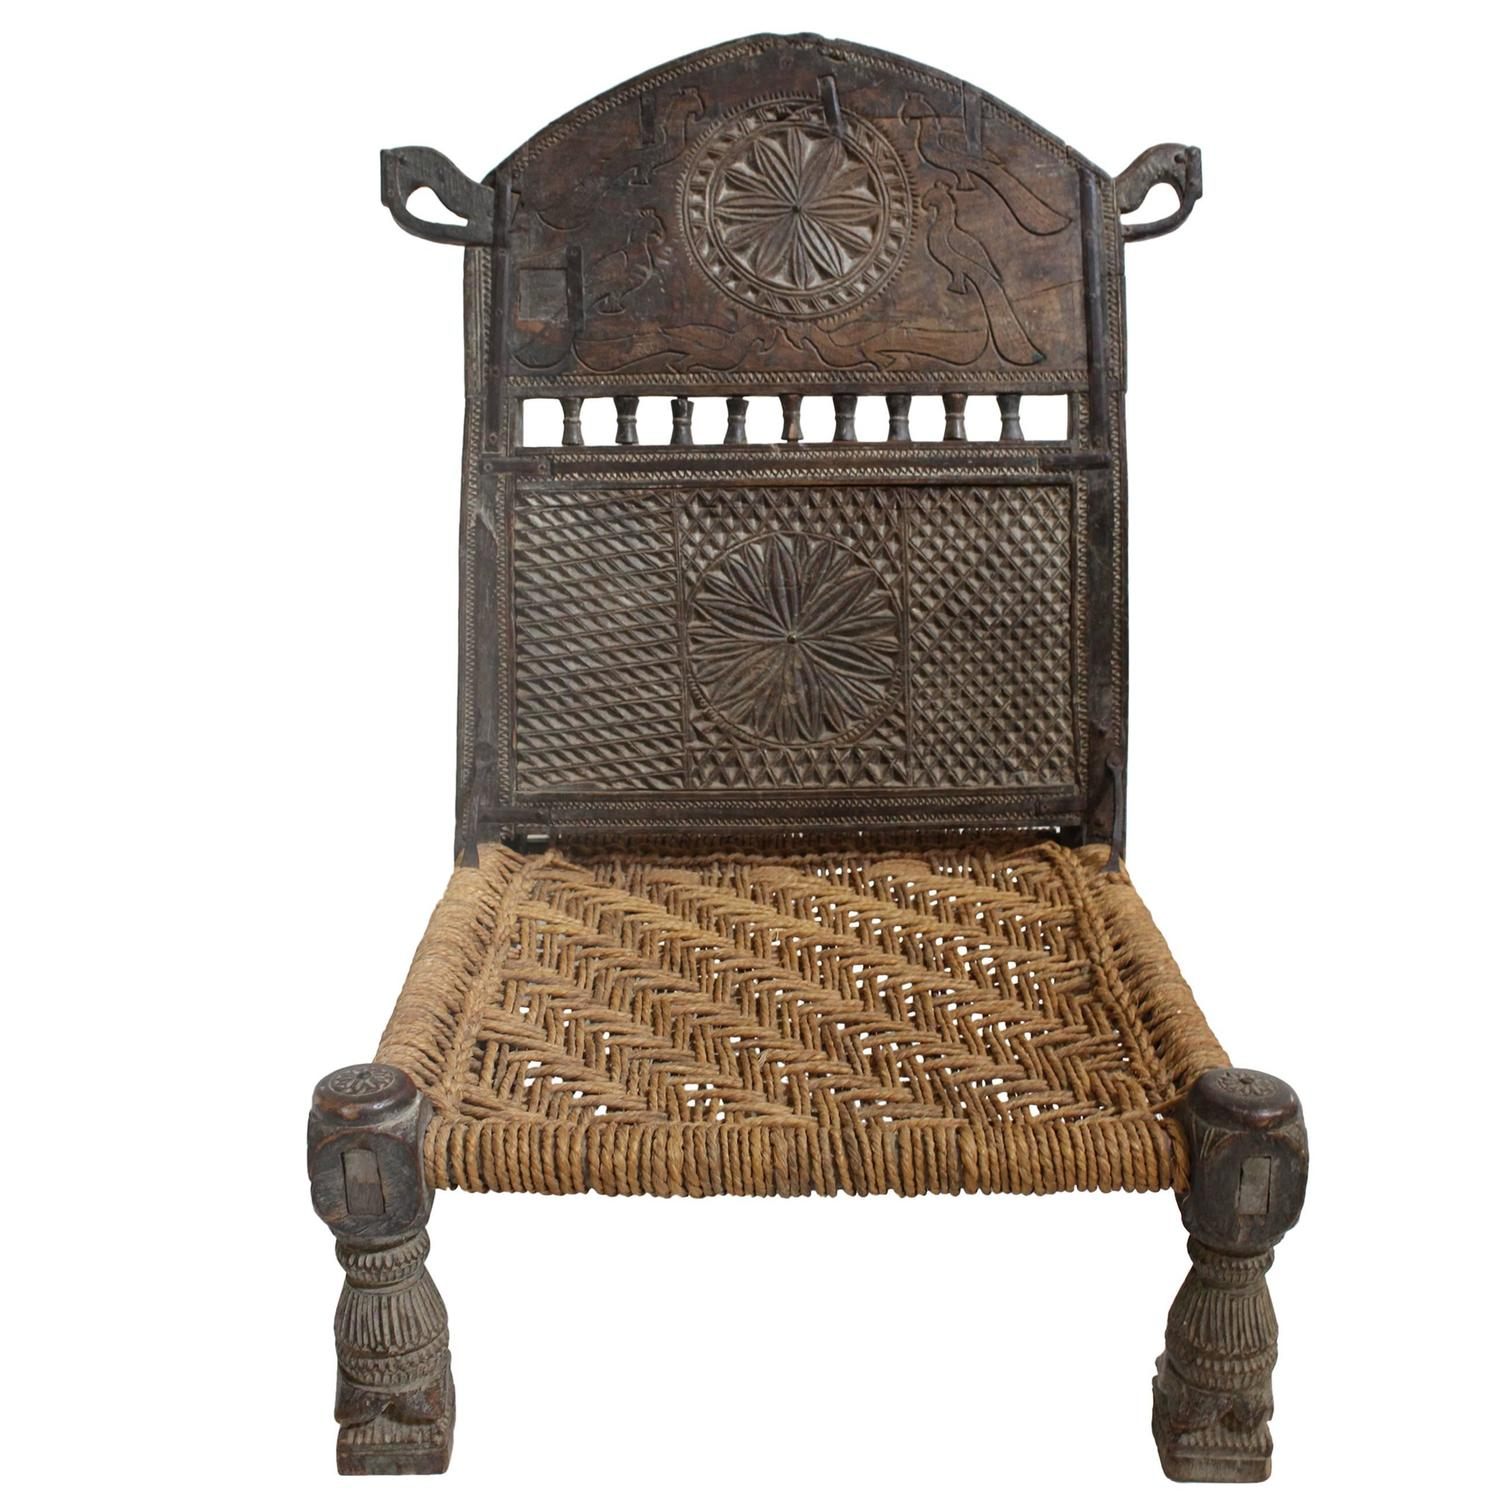 Antique Afghan Chieftain Ceremonial Hand-Carved Chair with Woven Rope Seat at 1stdibs